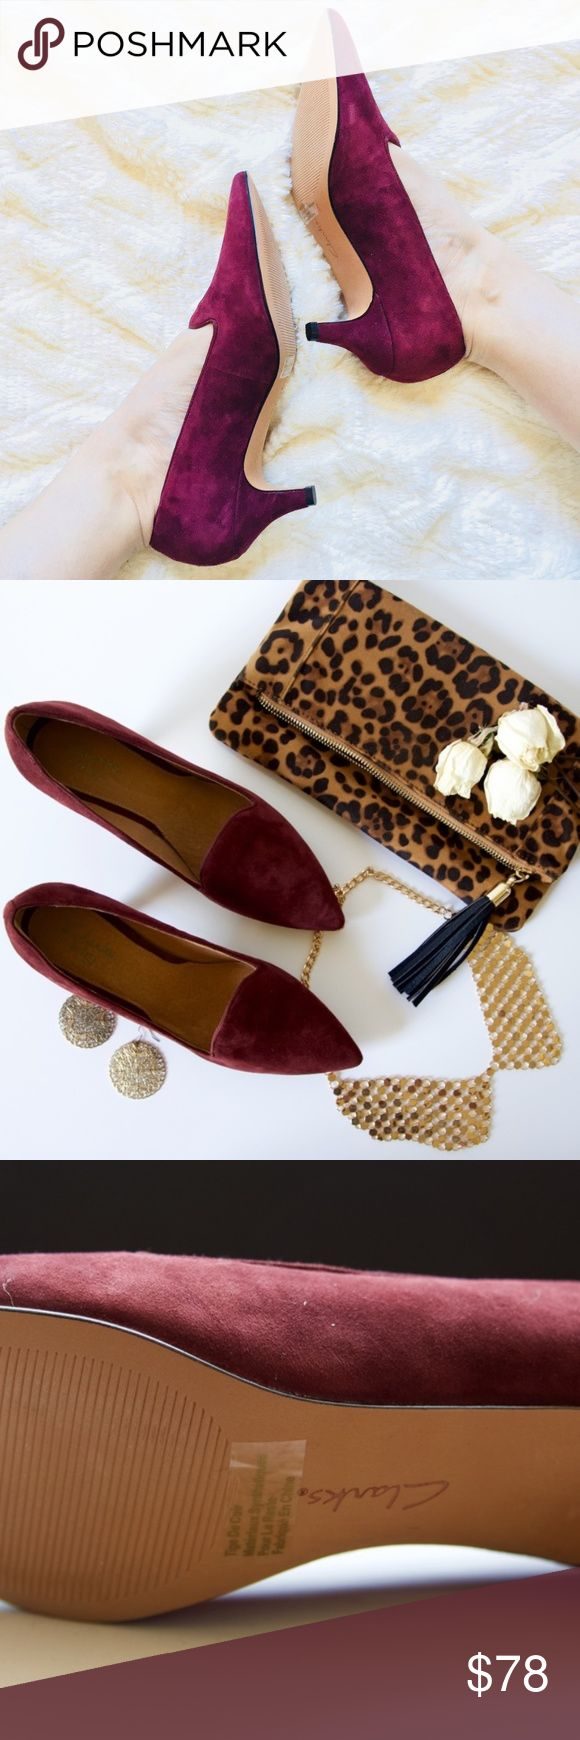 """Clarks Suede Sage Elfin Pump in Burgundy Meow. These kitten heels are the bomb. Sophisticated, yet a fun burgundy color. Easy to style & coordinate with outfits. The PERFECT work shoe, or wear with skinny jeans for an elegant casual look. Talk about comfort too - 1, a kitten heel, so not too high. 2, OrthoLife footbed cushions. Yes, I kid you not. Talk about an 8 hour work day dream!   ▪️2.25"""" heel ▪️Just like new. Zero wear on soles. ▪️Leather upper & lining  ▪️Please read Closet Guidelines…"""